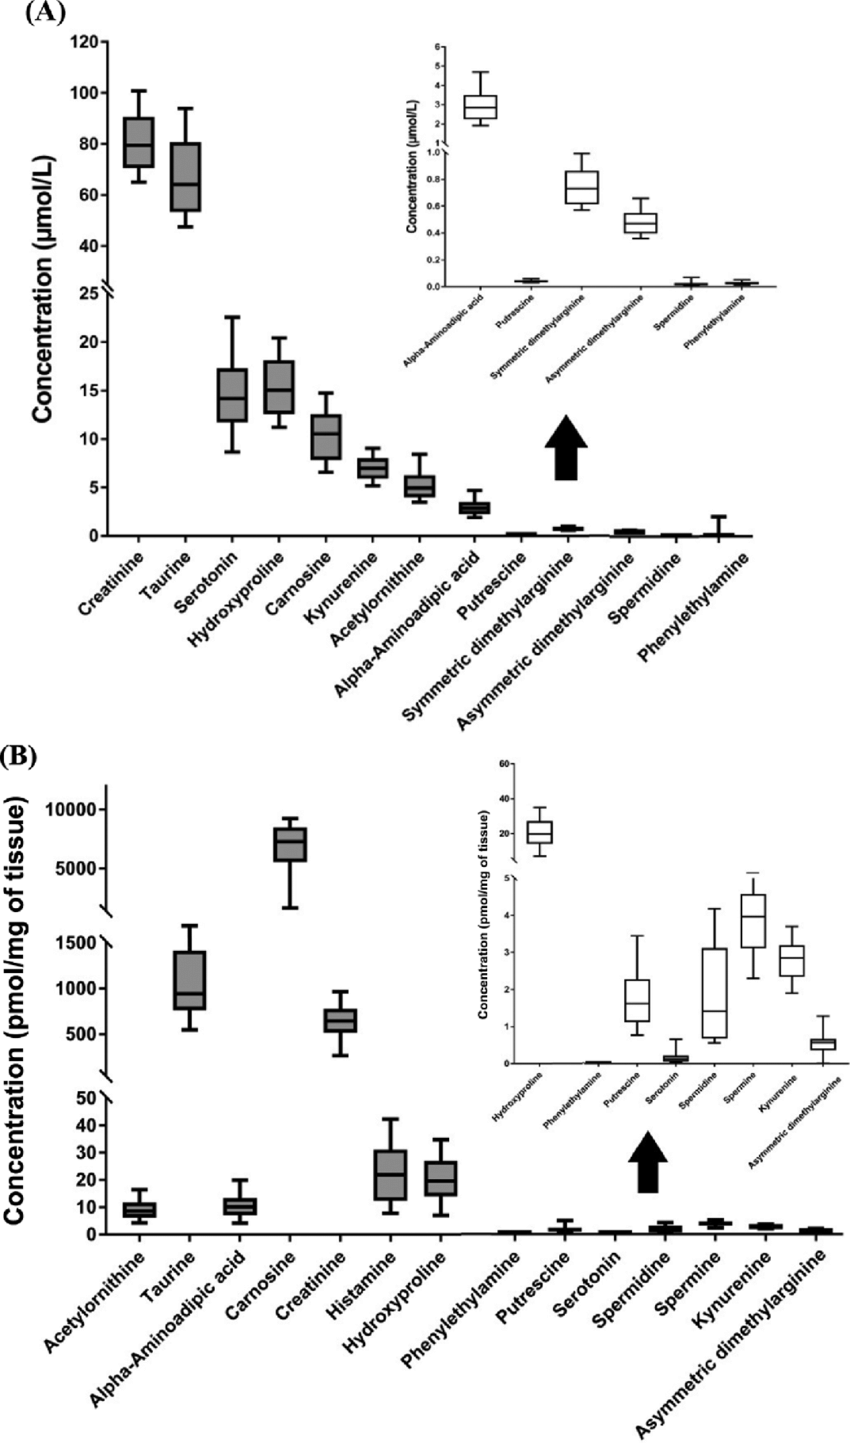 hight resolution of concentration of biogenic amines in a serum and b skeletal muscle of